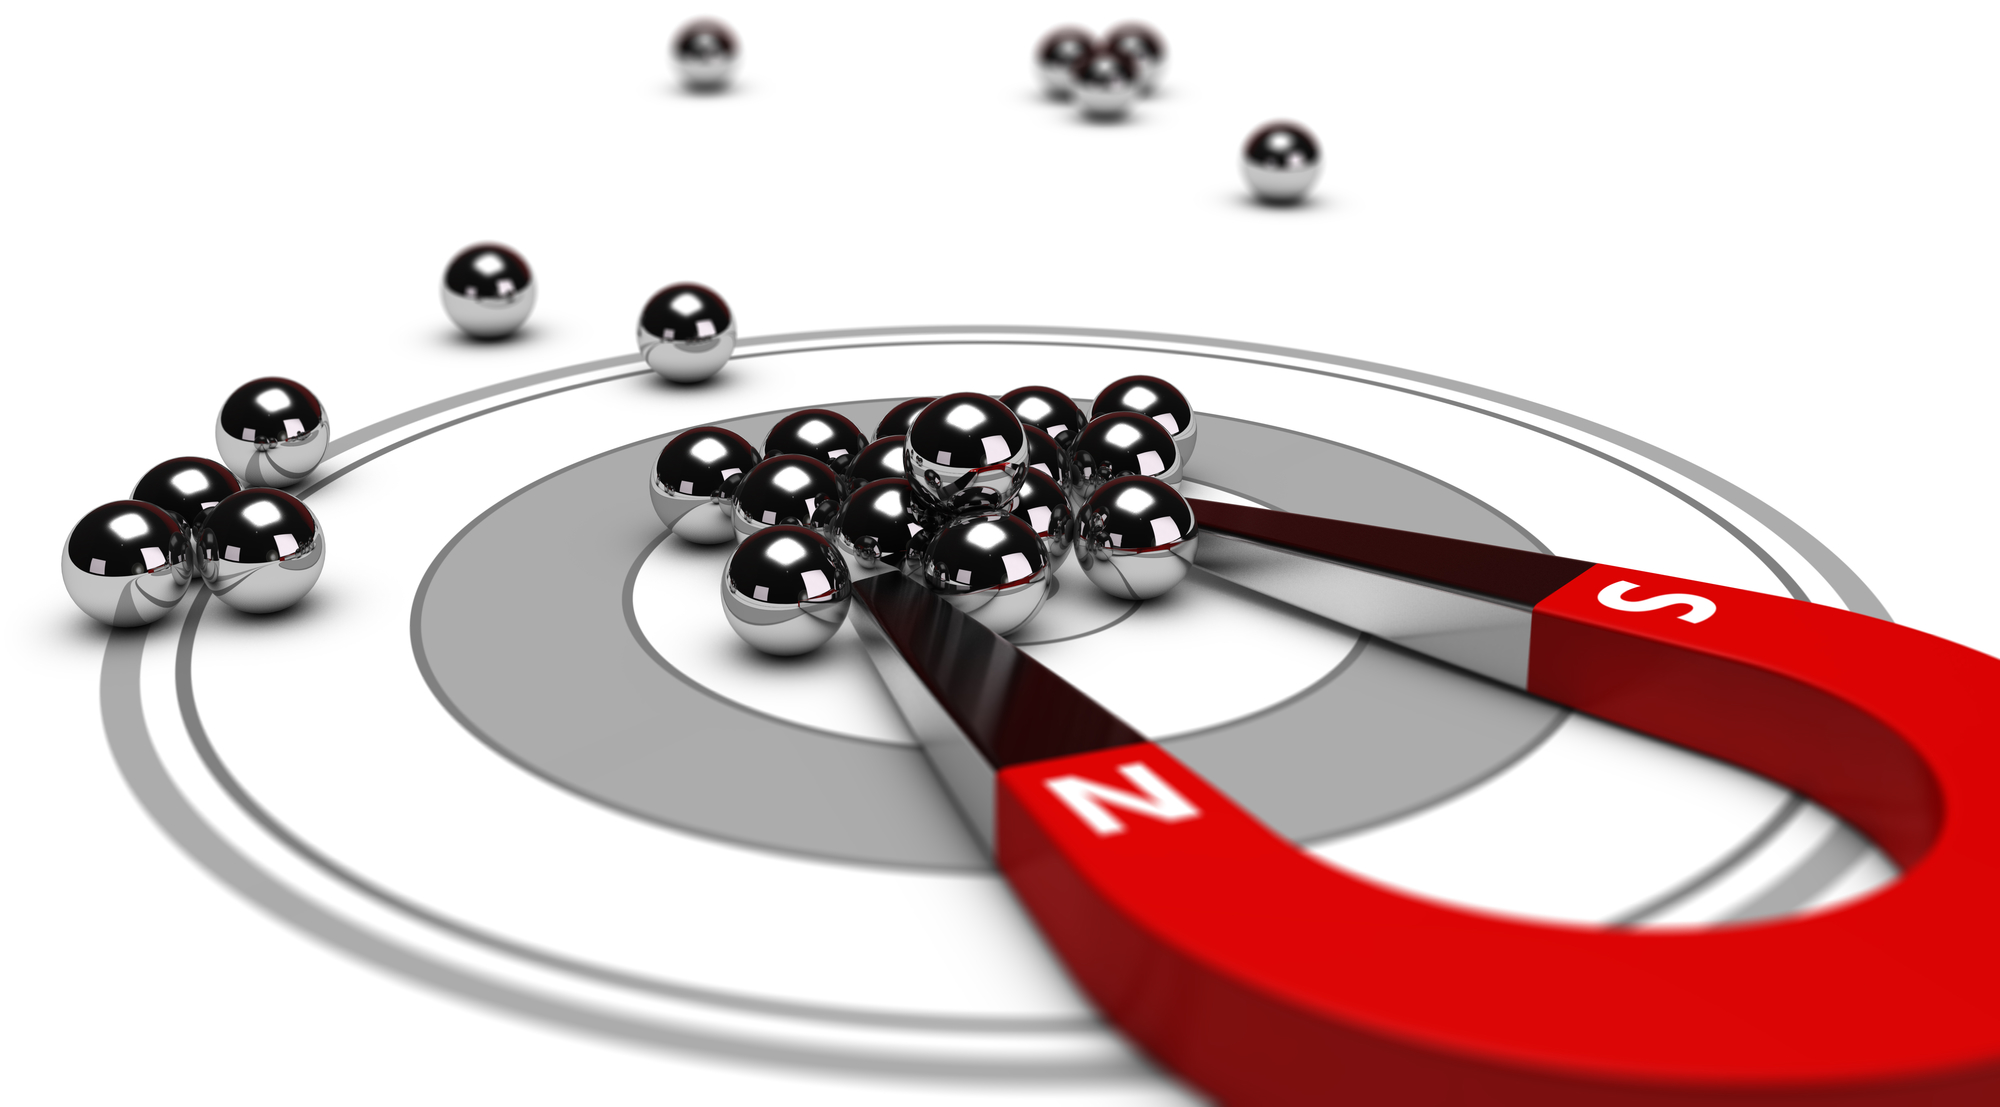 Horseshoe magnet attracting metal balls in the center of a grey target. Image concept of inbound marketing or advertising.